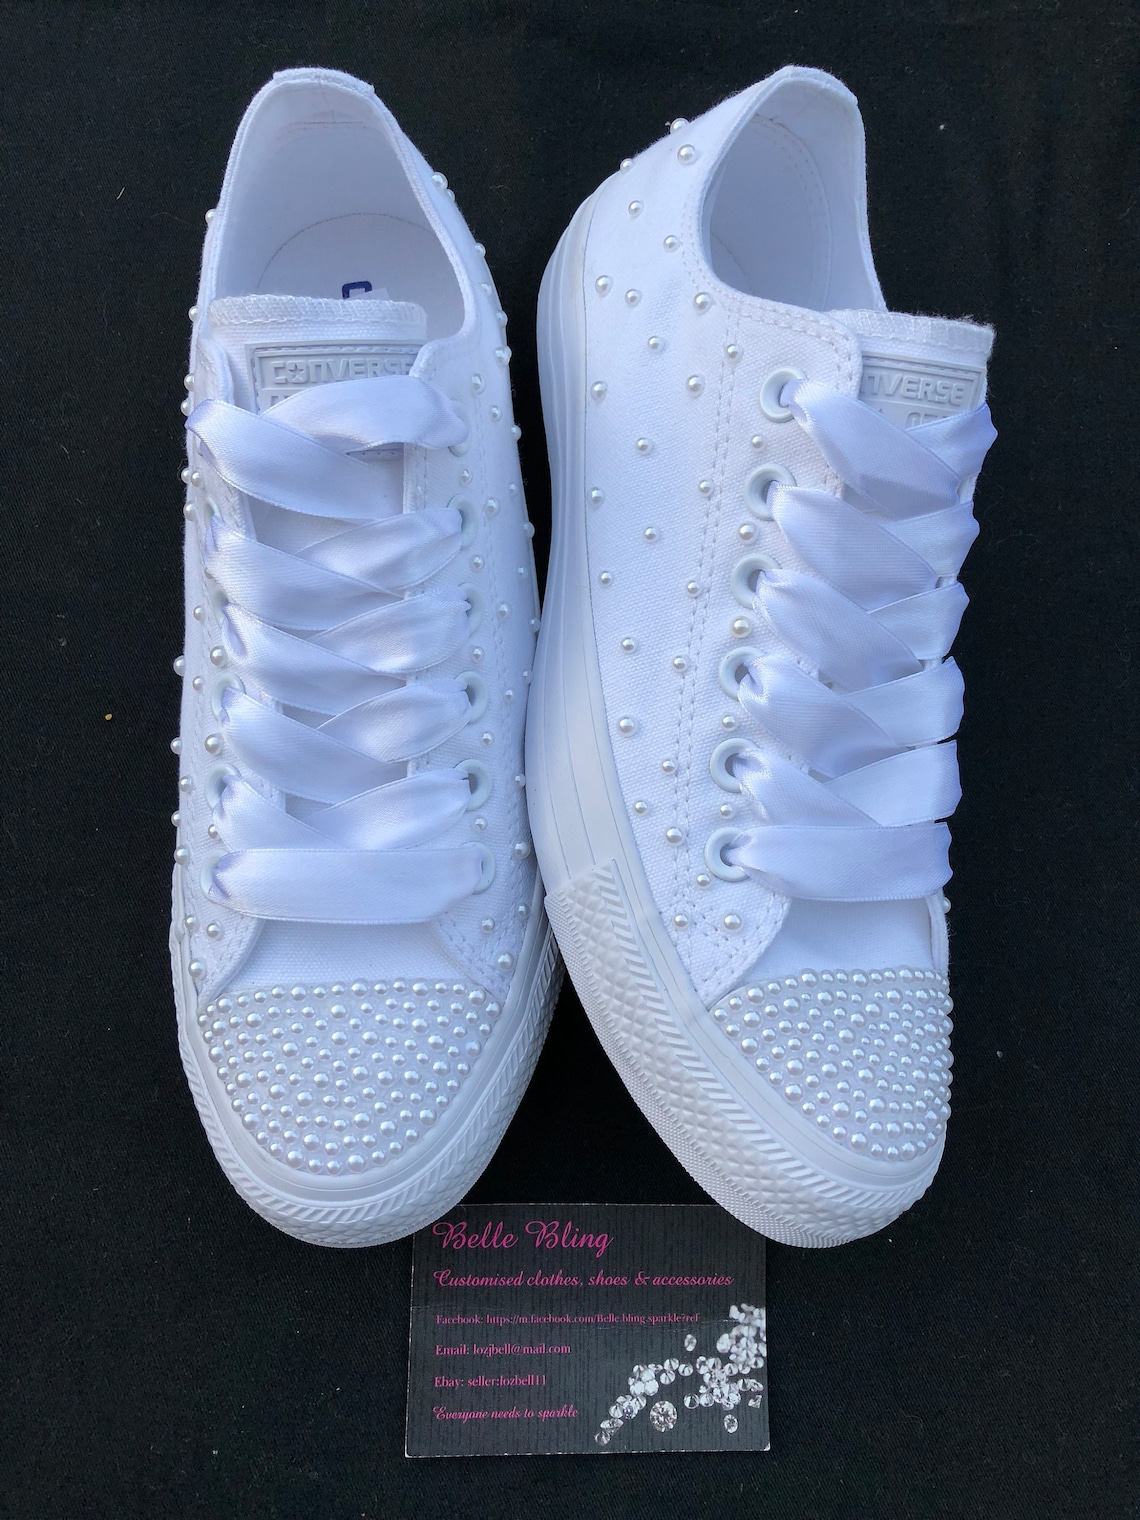 Wedding bridal customised converse, crystals, pearls, personalised, bling made to order